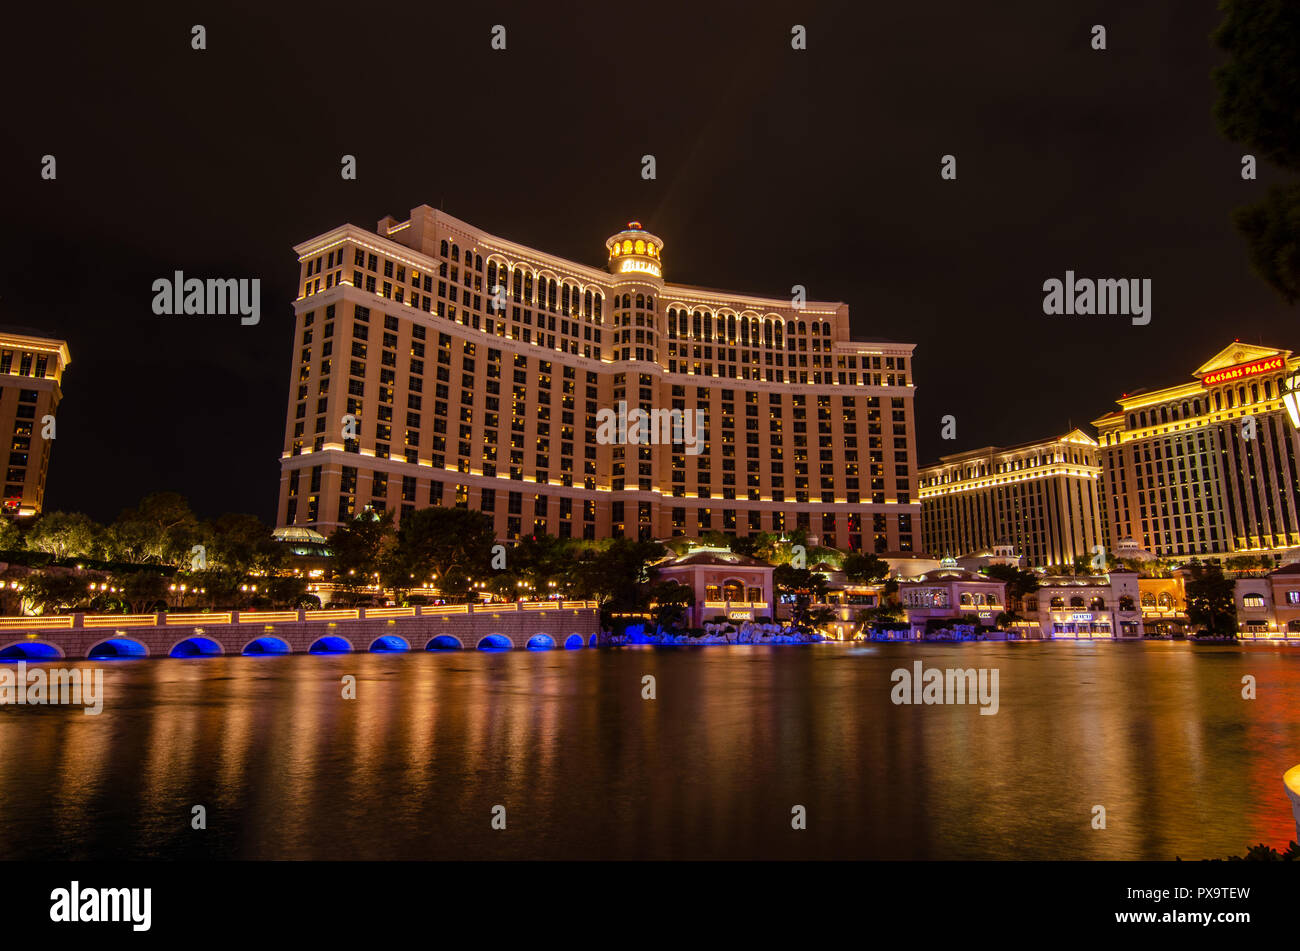 Long exposure of the Bellagio Hotel at night Stock Photo